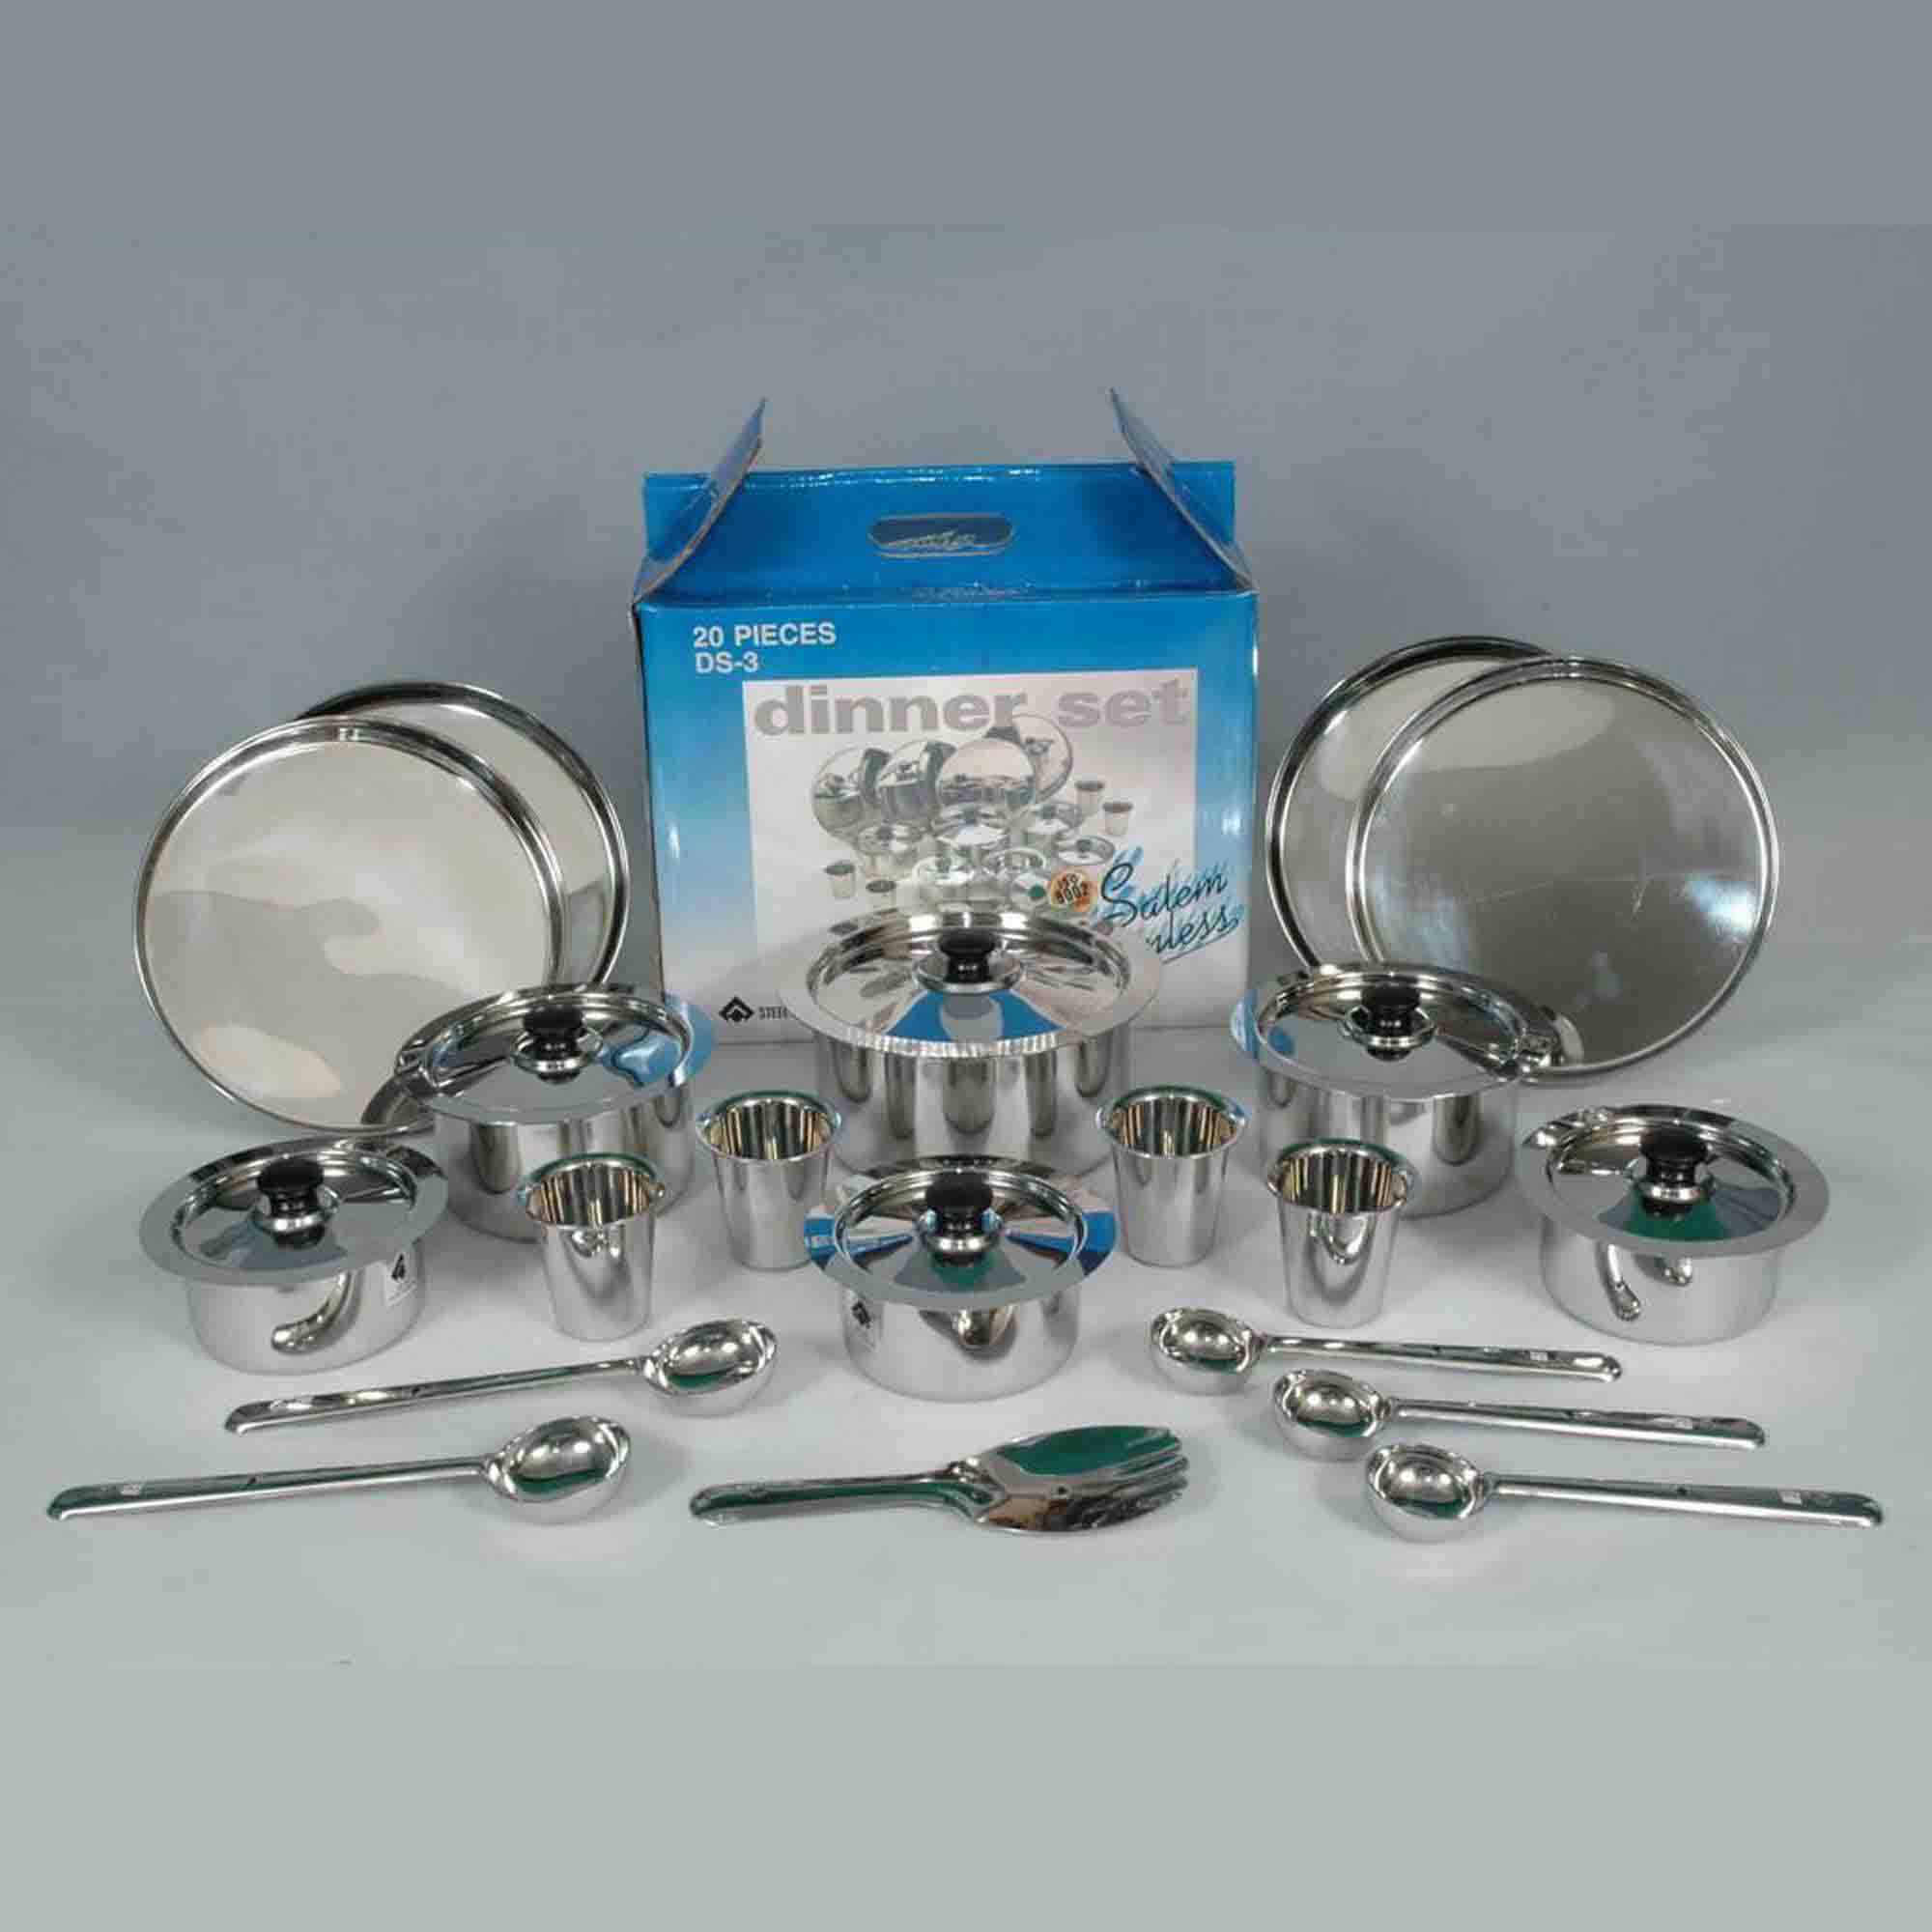 SAIL SALEM 20 Pc Dinner Set (Tope Model)